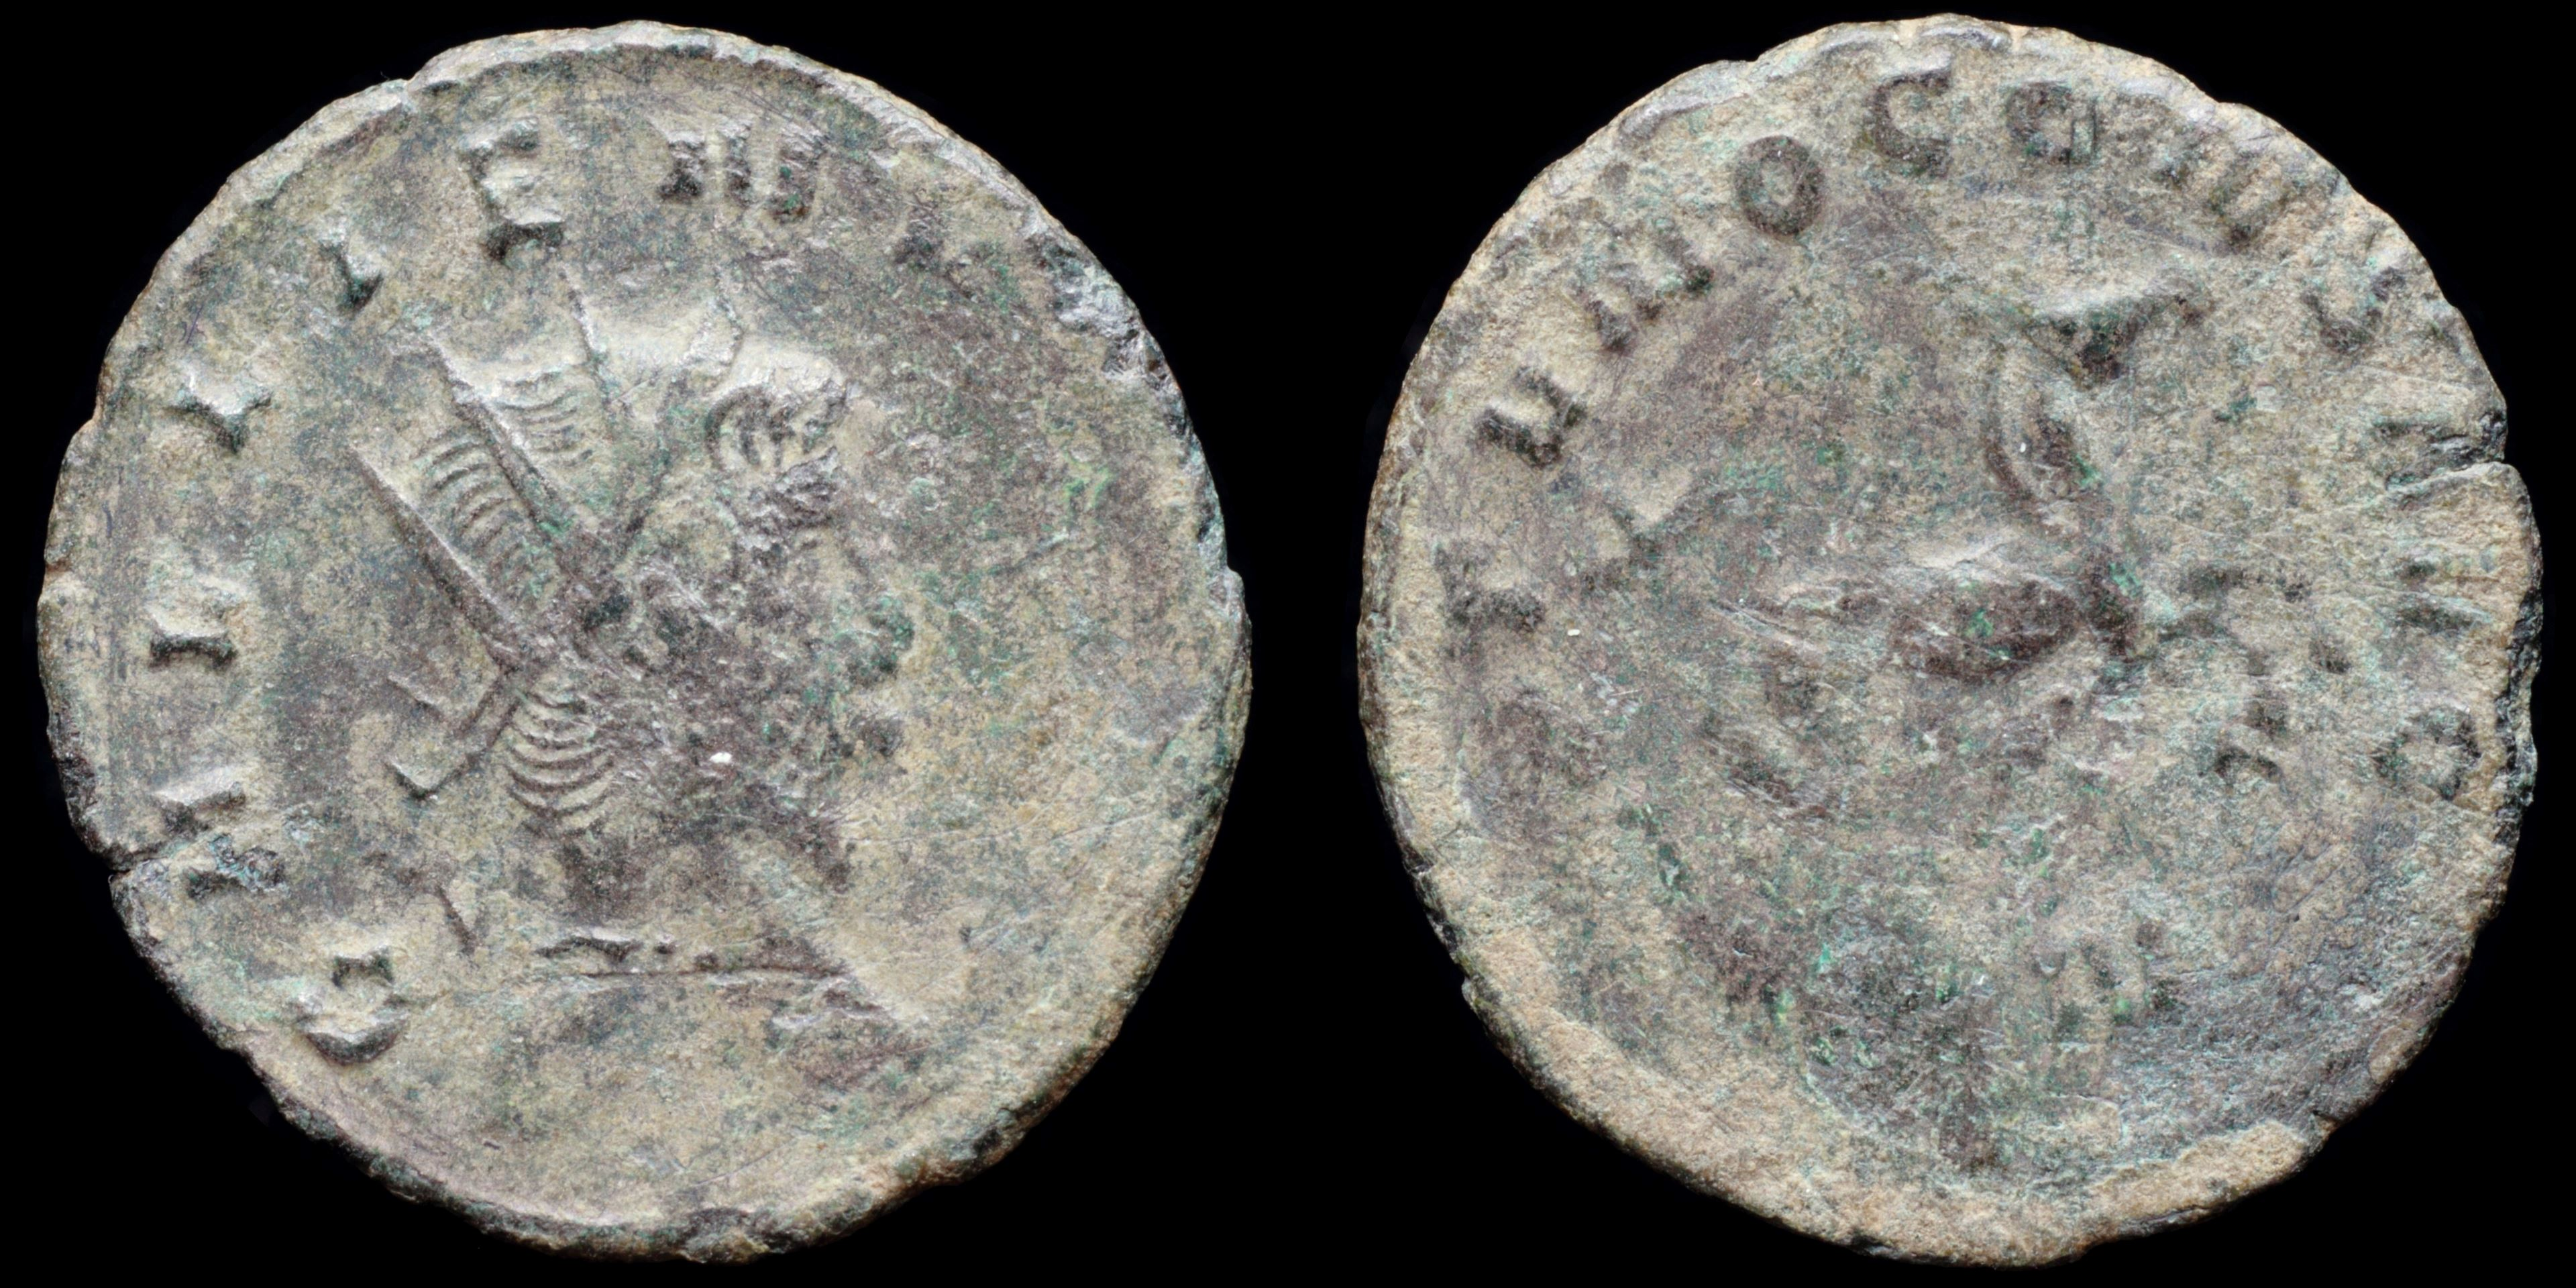 /Files/Images/Coinsite/CoinDB/614_Gallienus_hippocamp.jpg